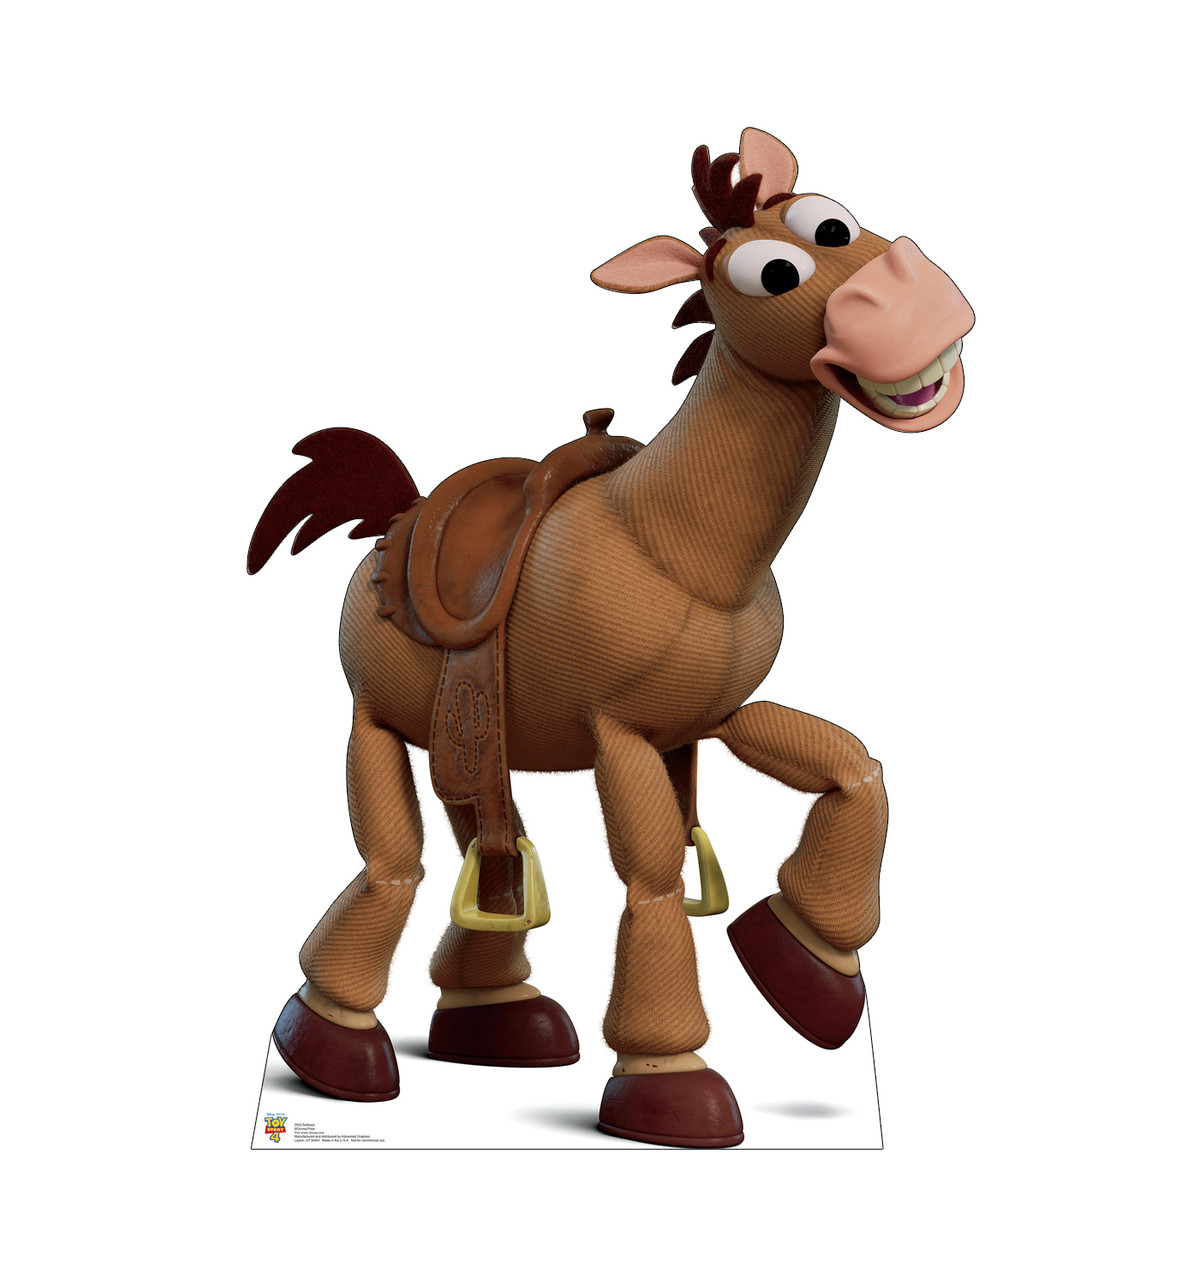 Bullseye - Toy Story 4 Cardboard Cutout Front View